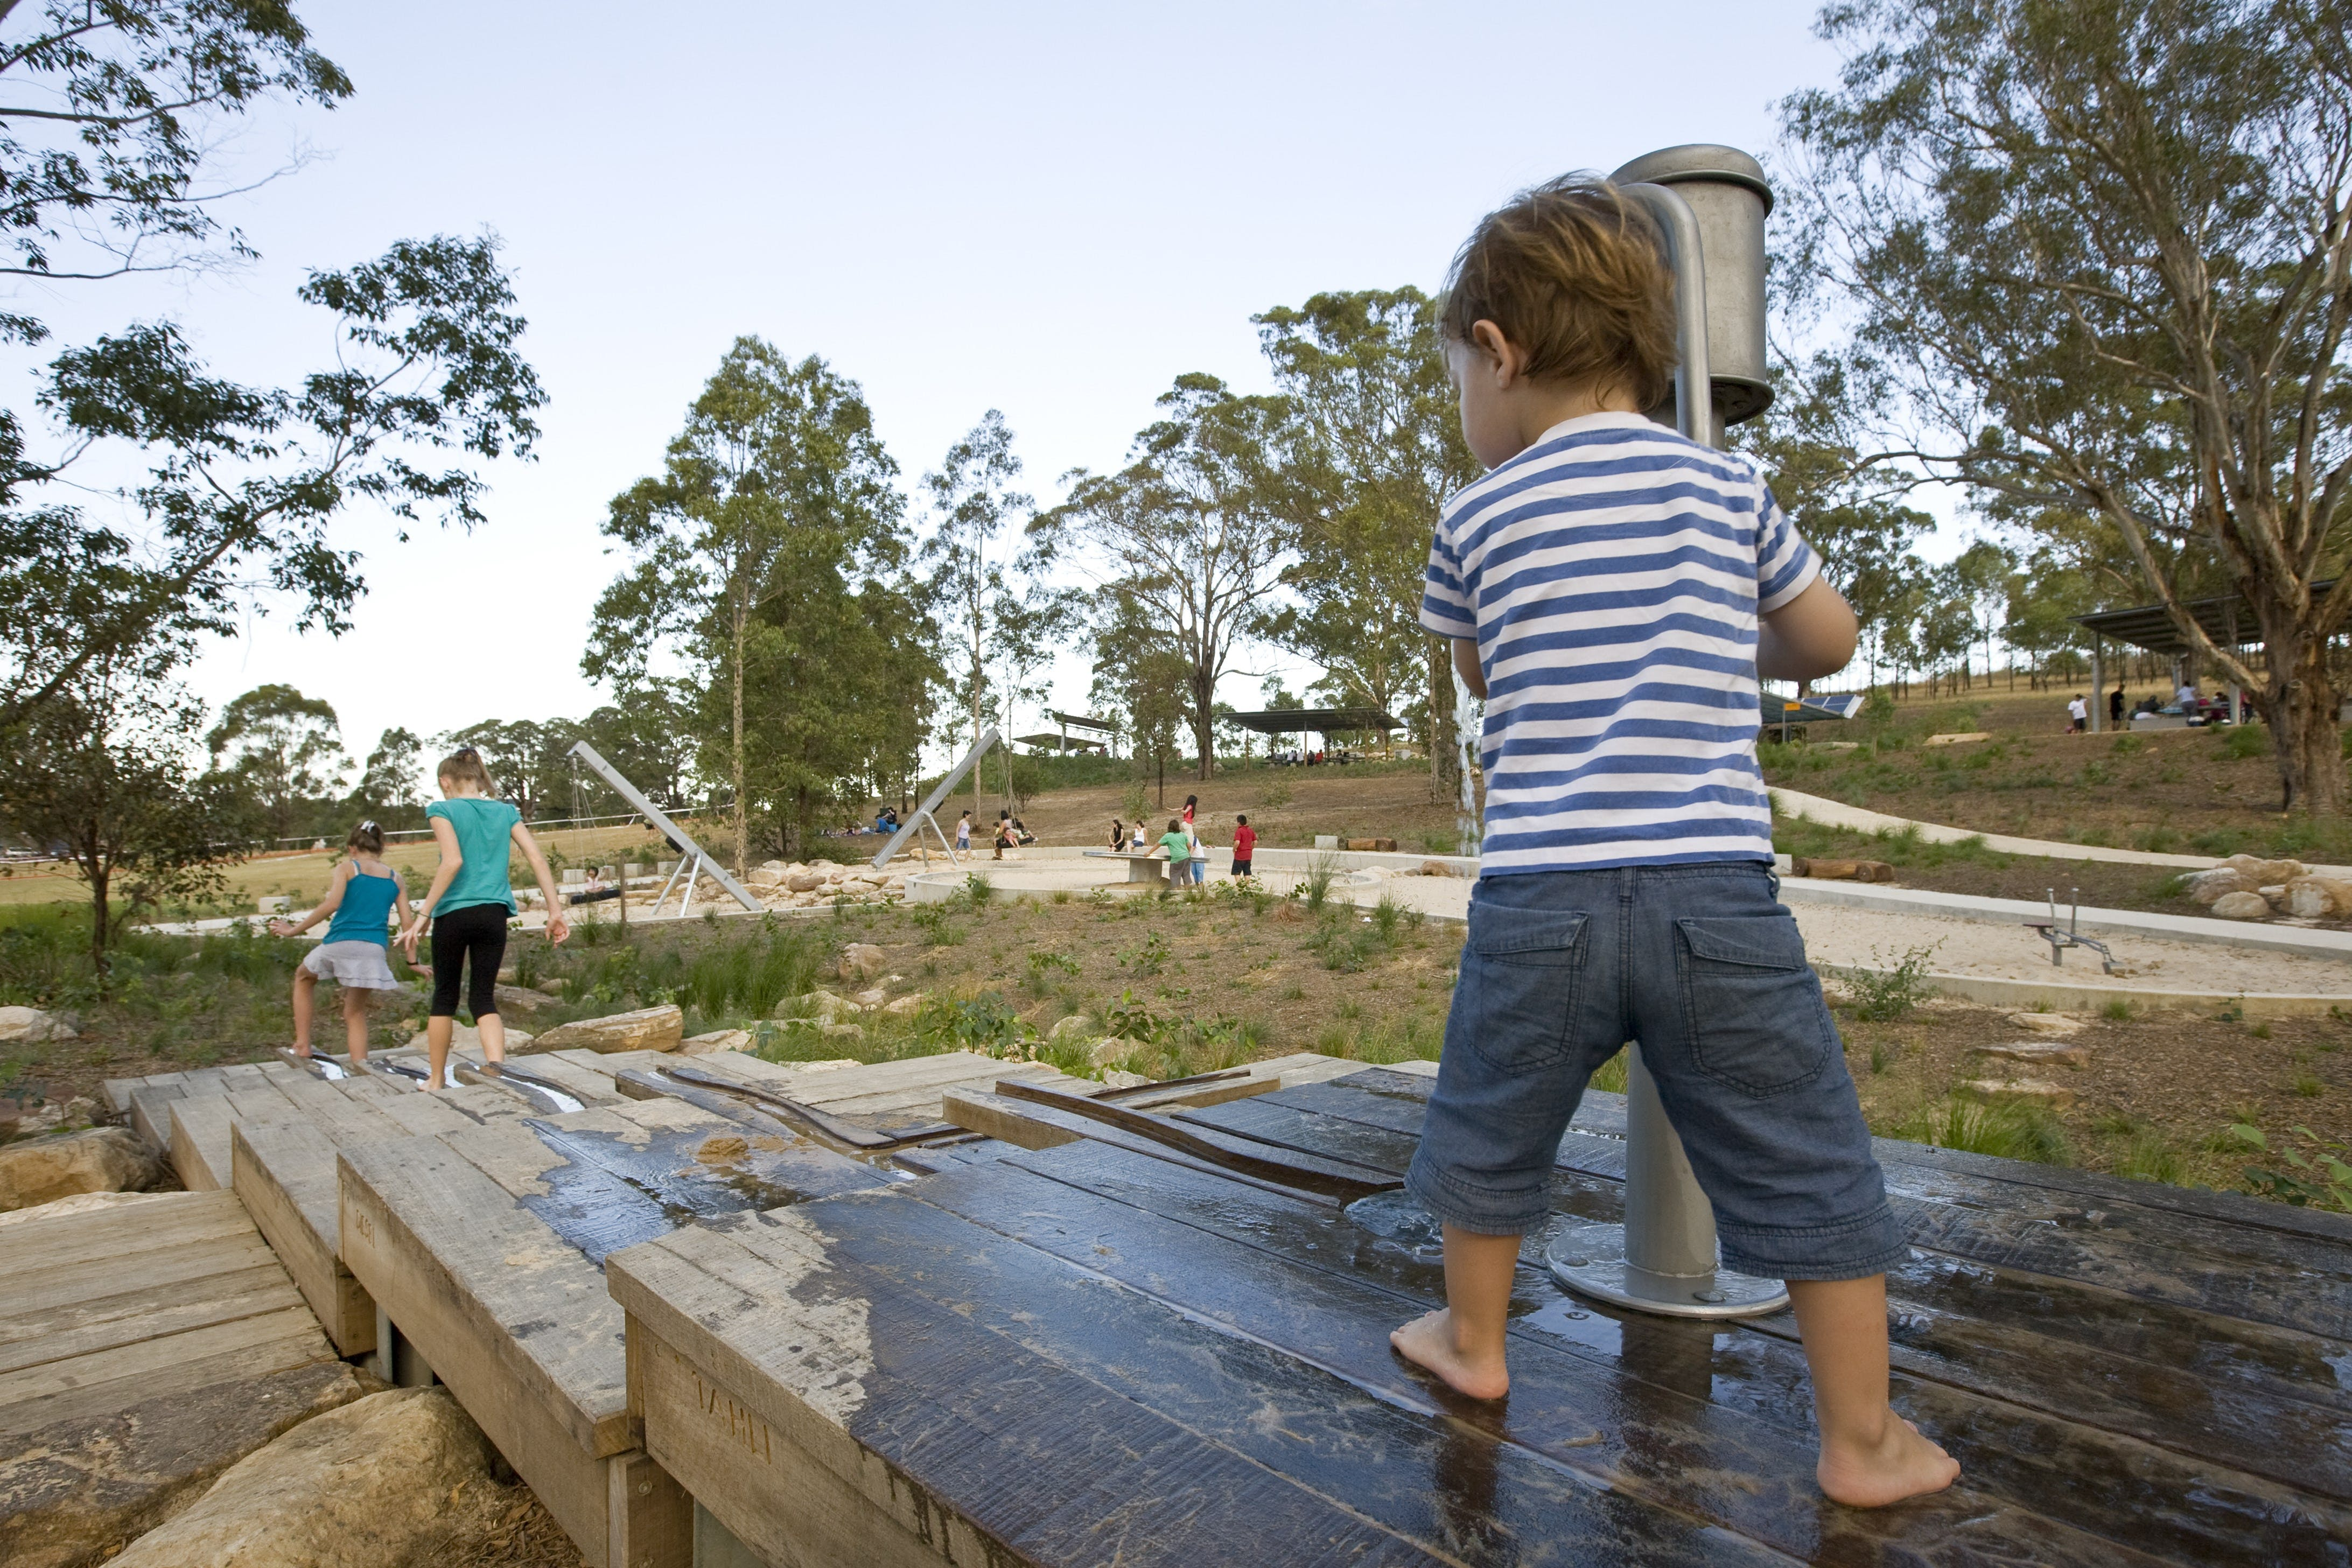 Western Sydney Parklands - Attractions